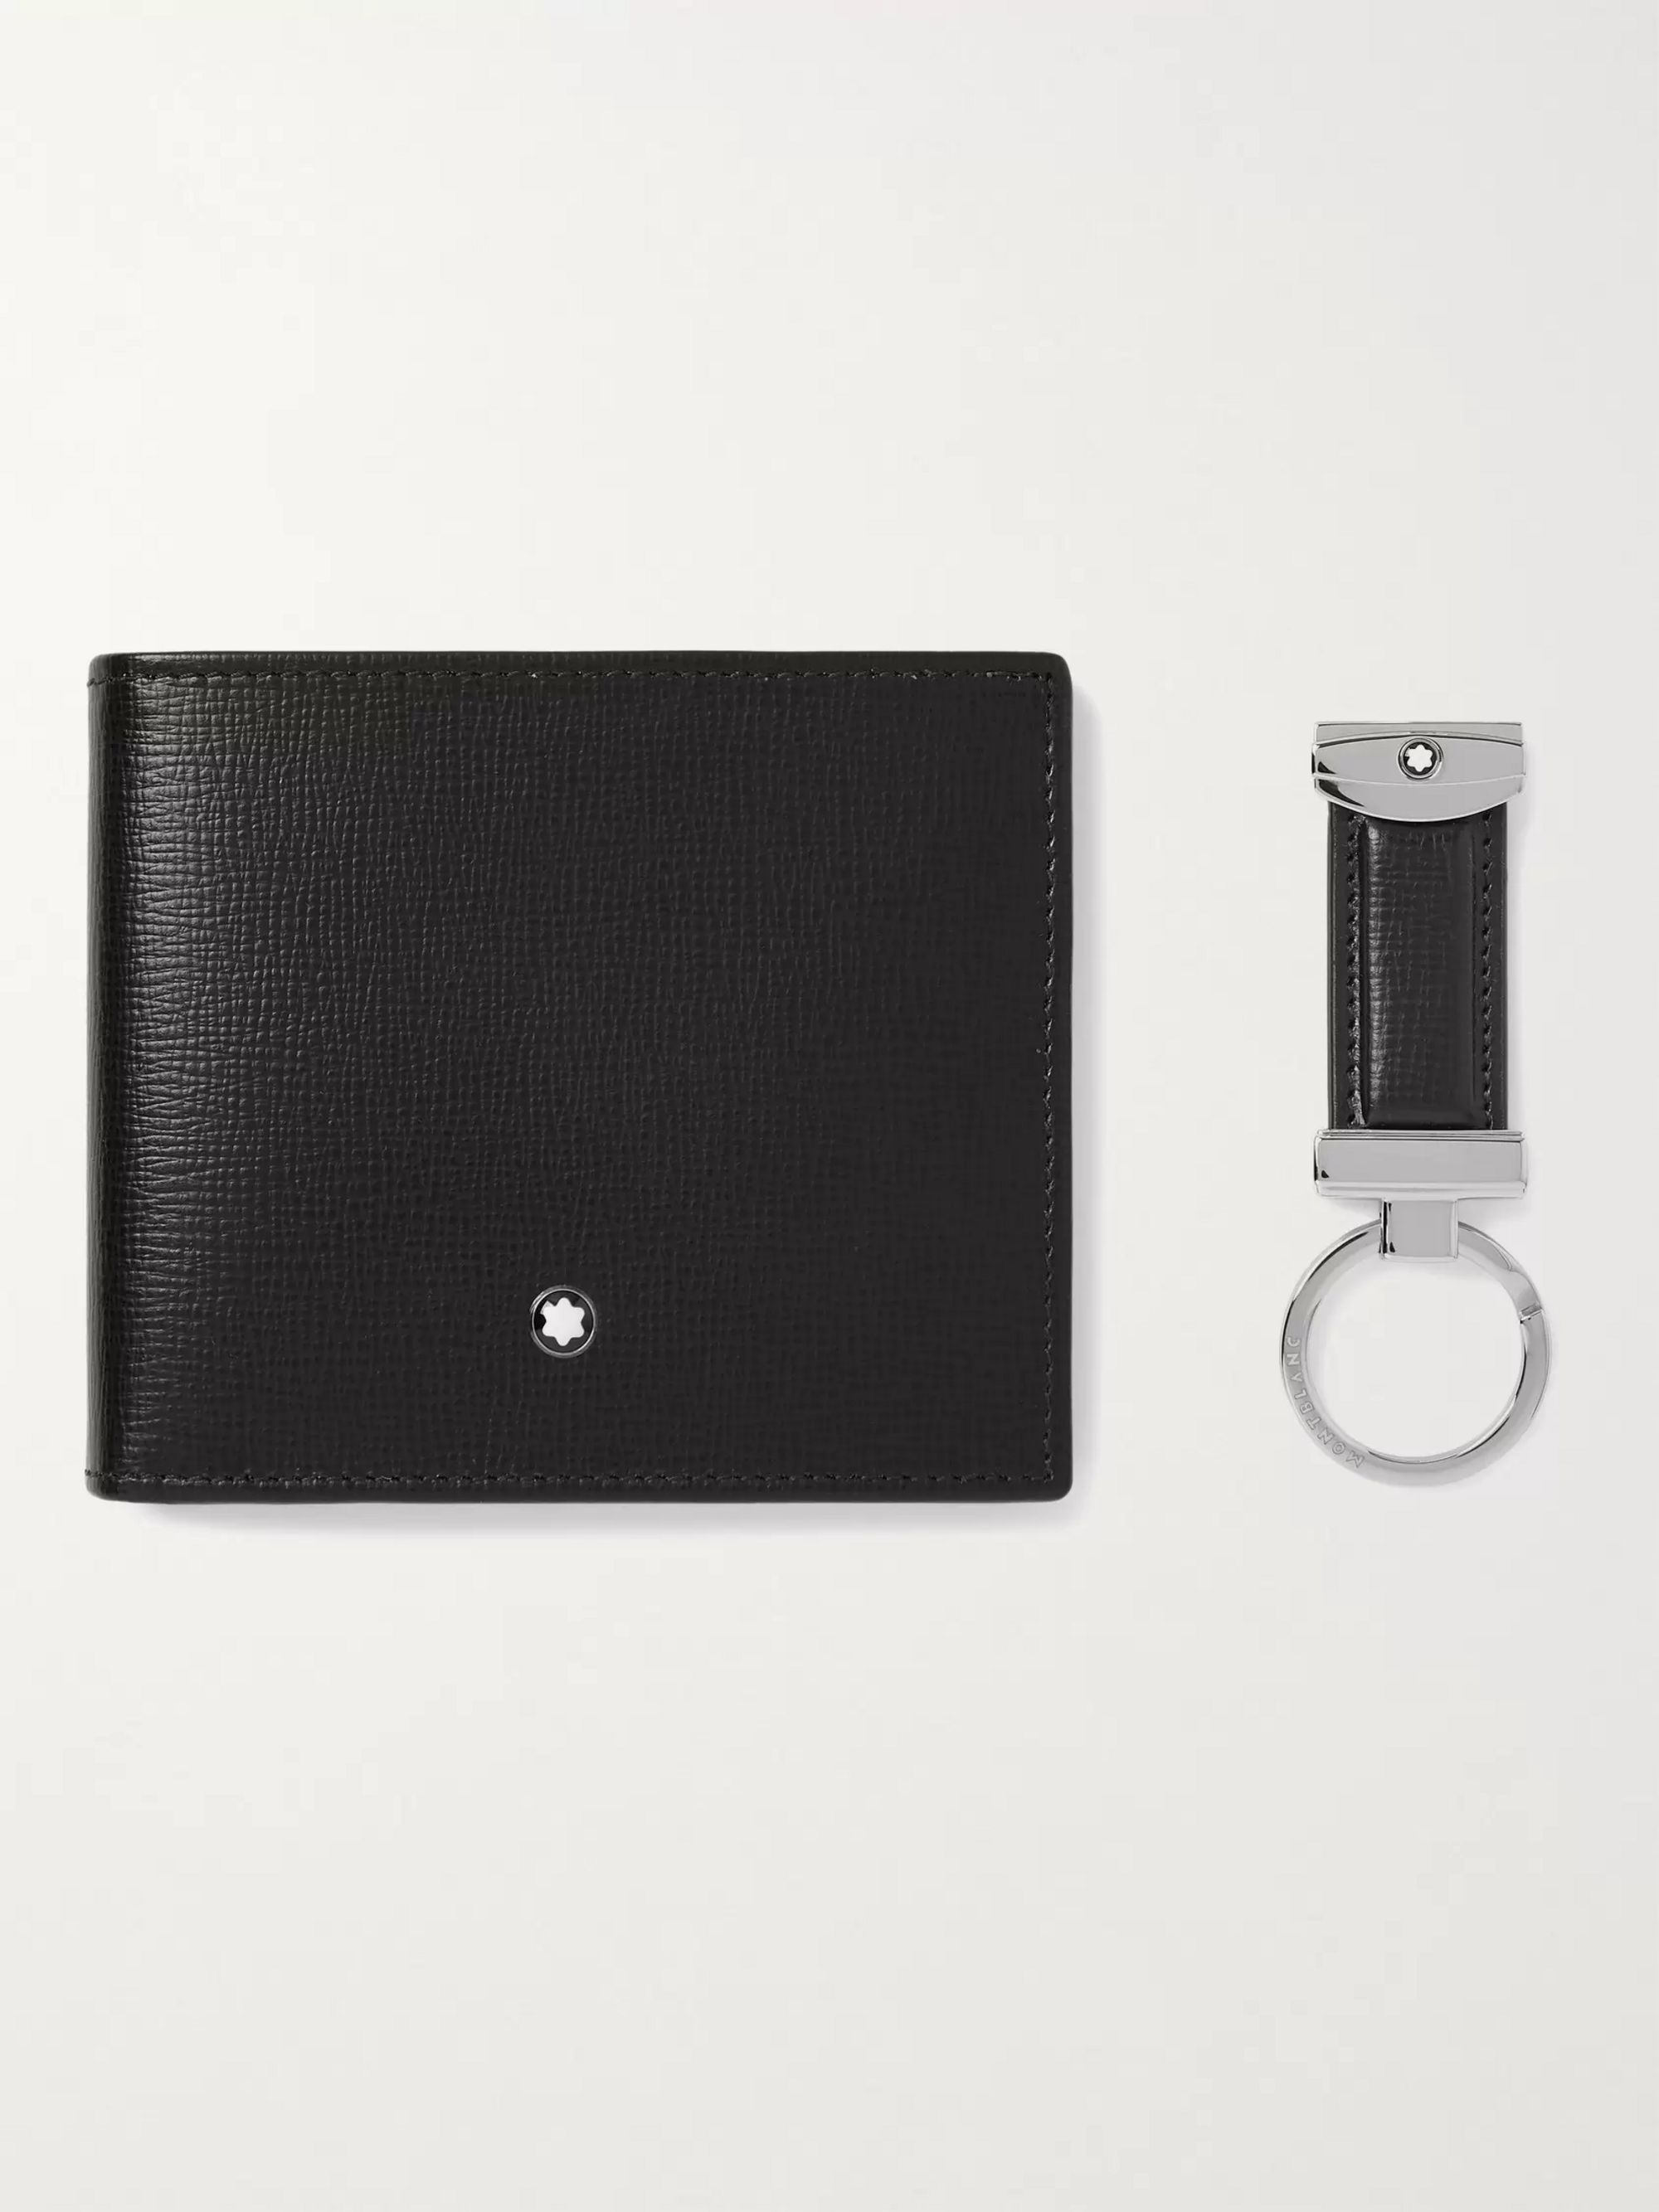 MONTBLANC Full-Grain Leather Billfold Wallet and Key Fob Gift Set